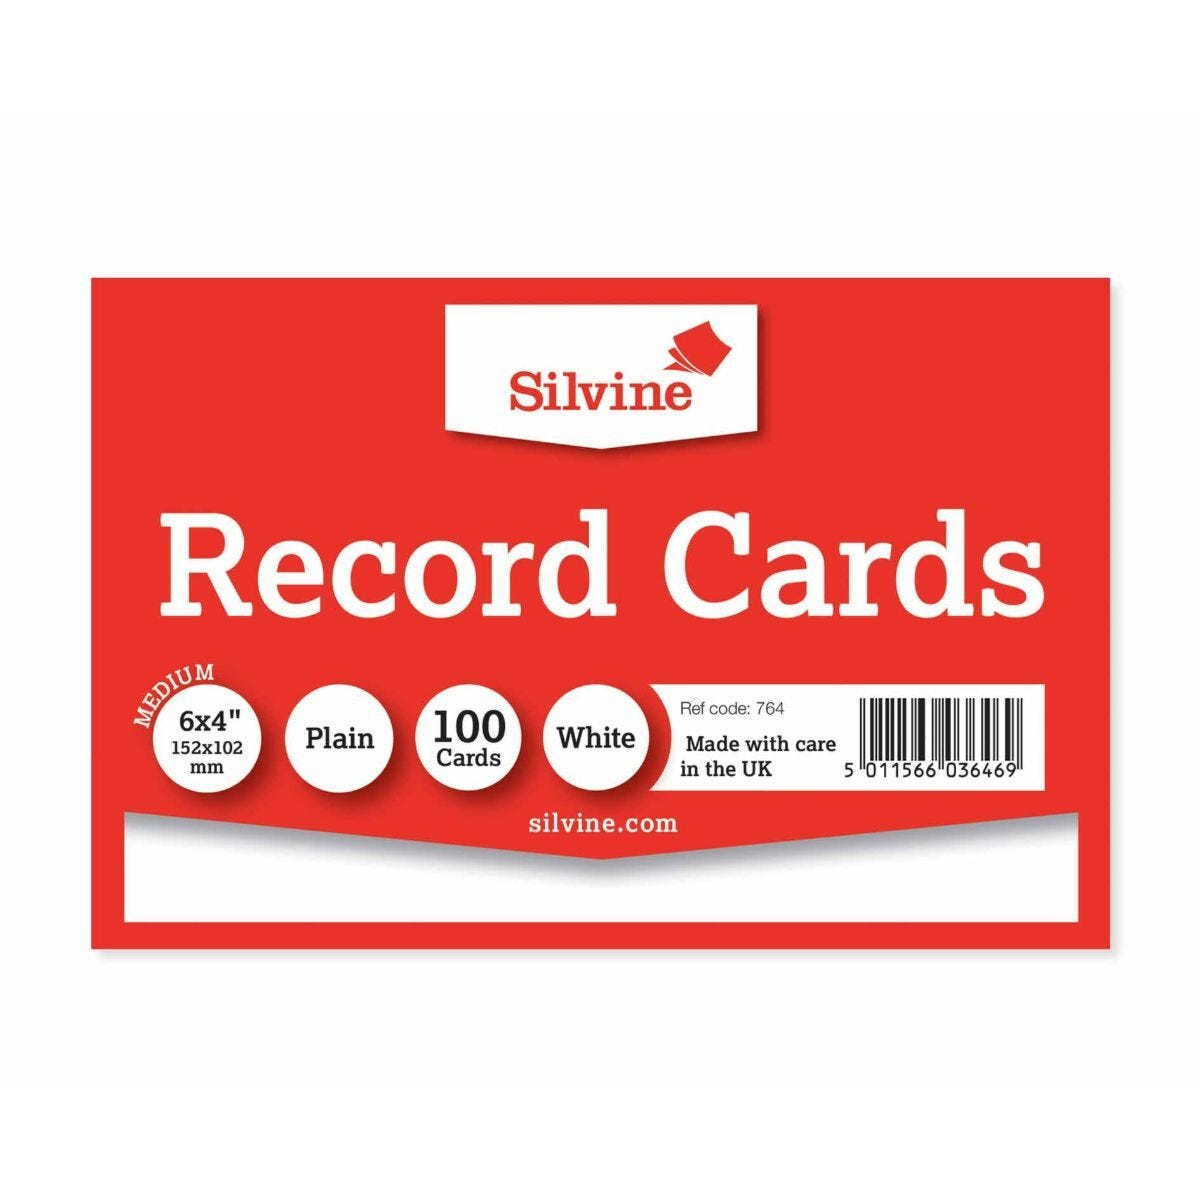 Silvine Record Cards 152x101mm Plain Pack of 100